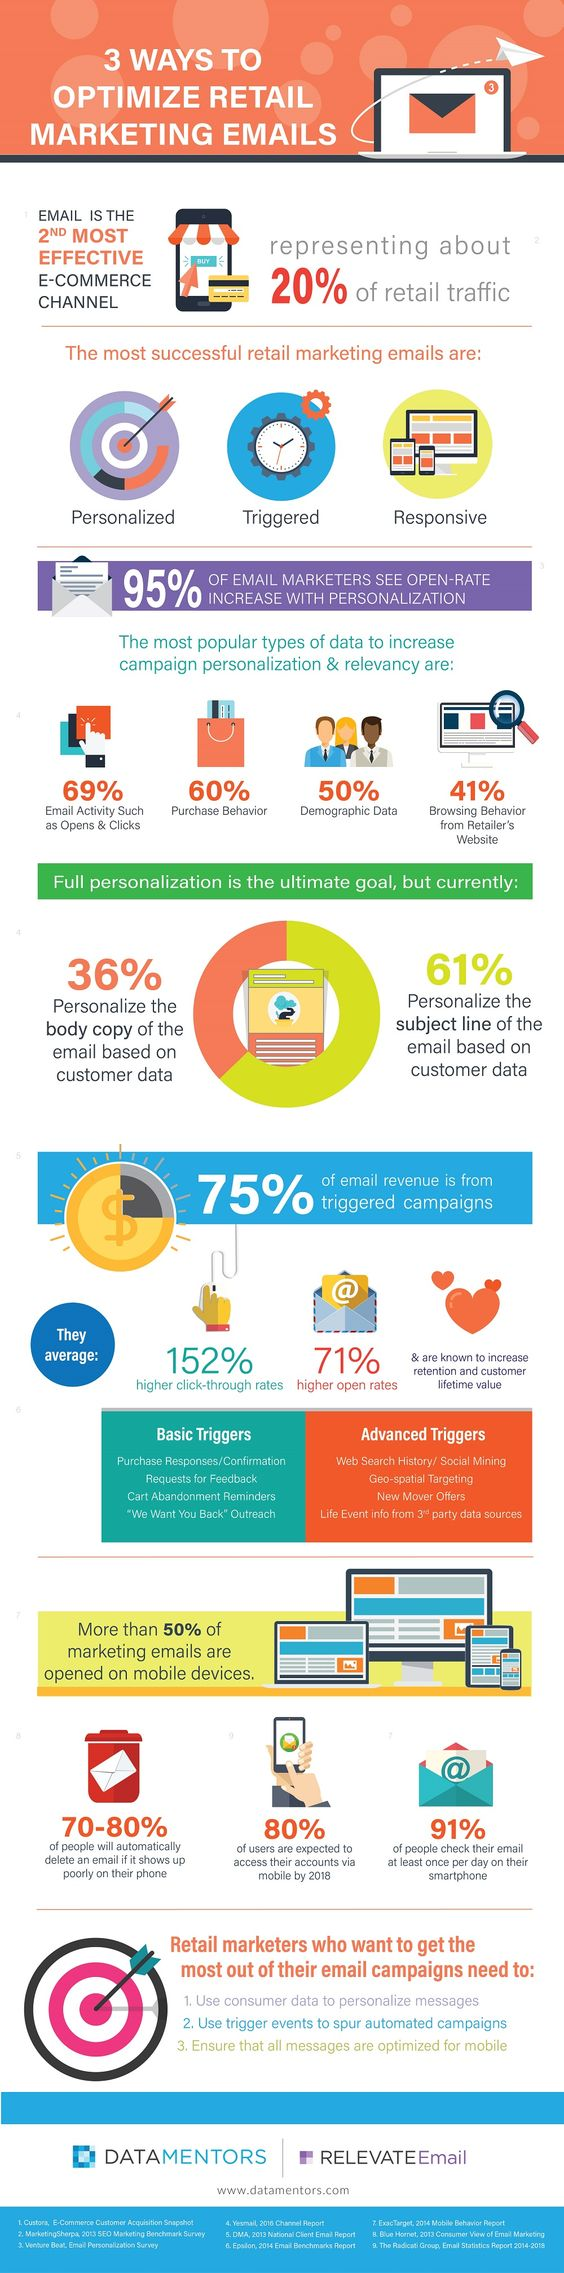 Ways To Optimize Retail Marketing Emails Although Email Has Been